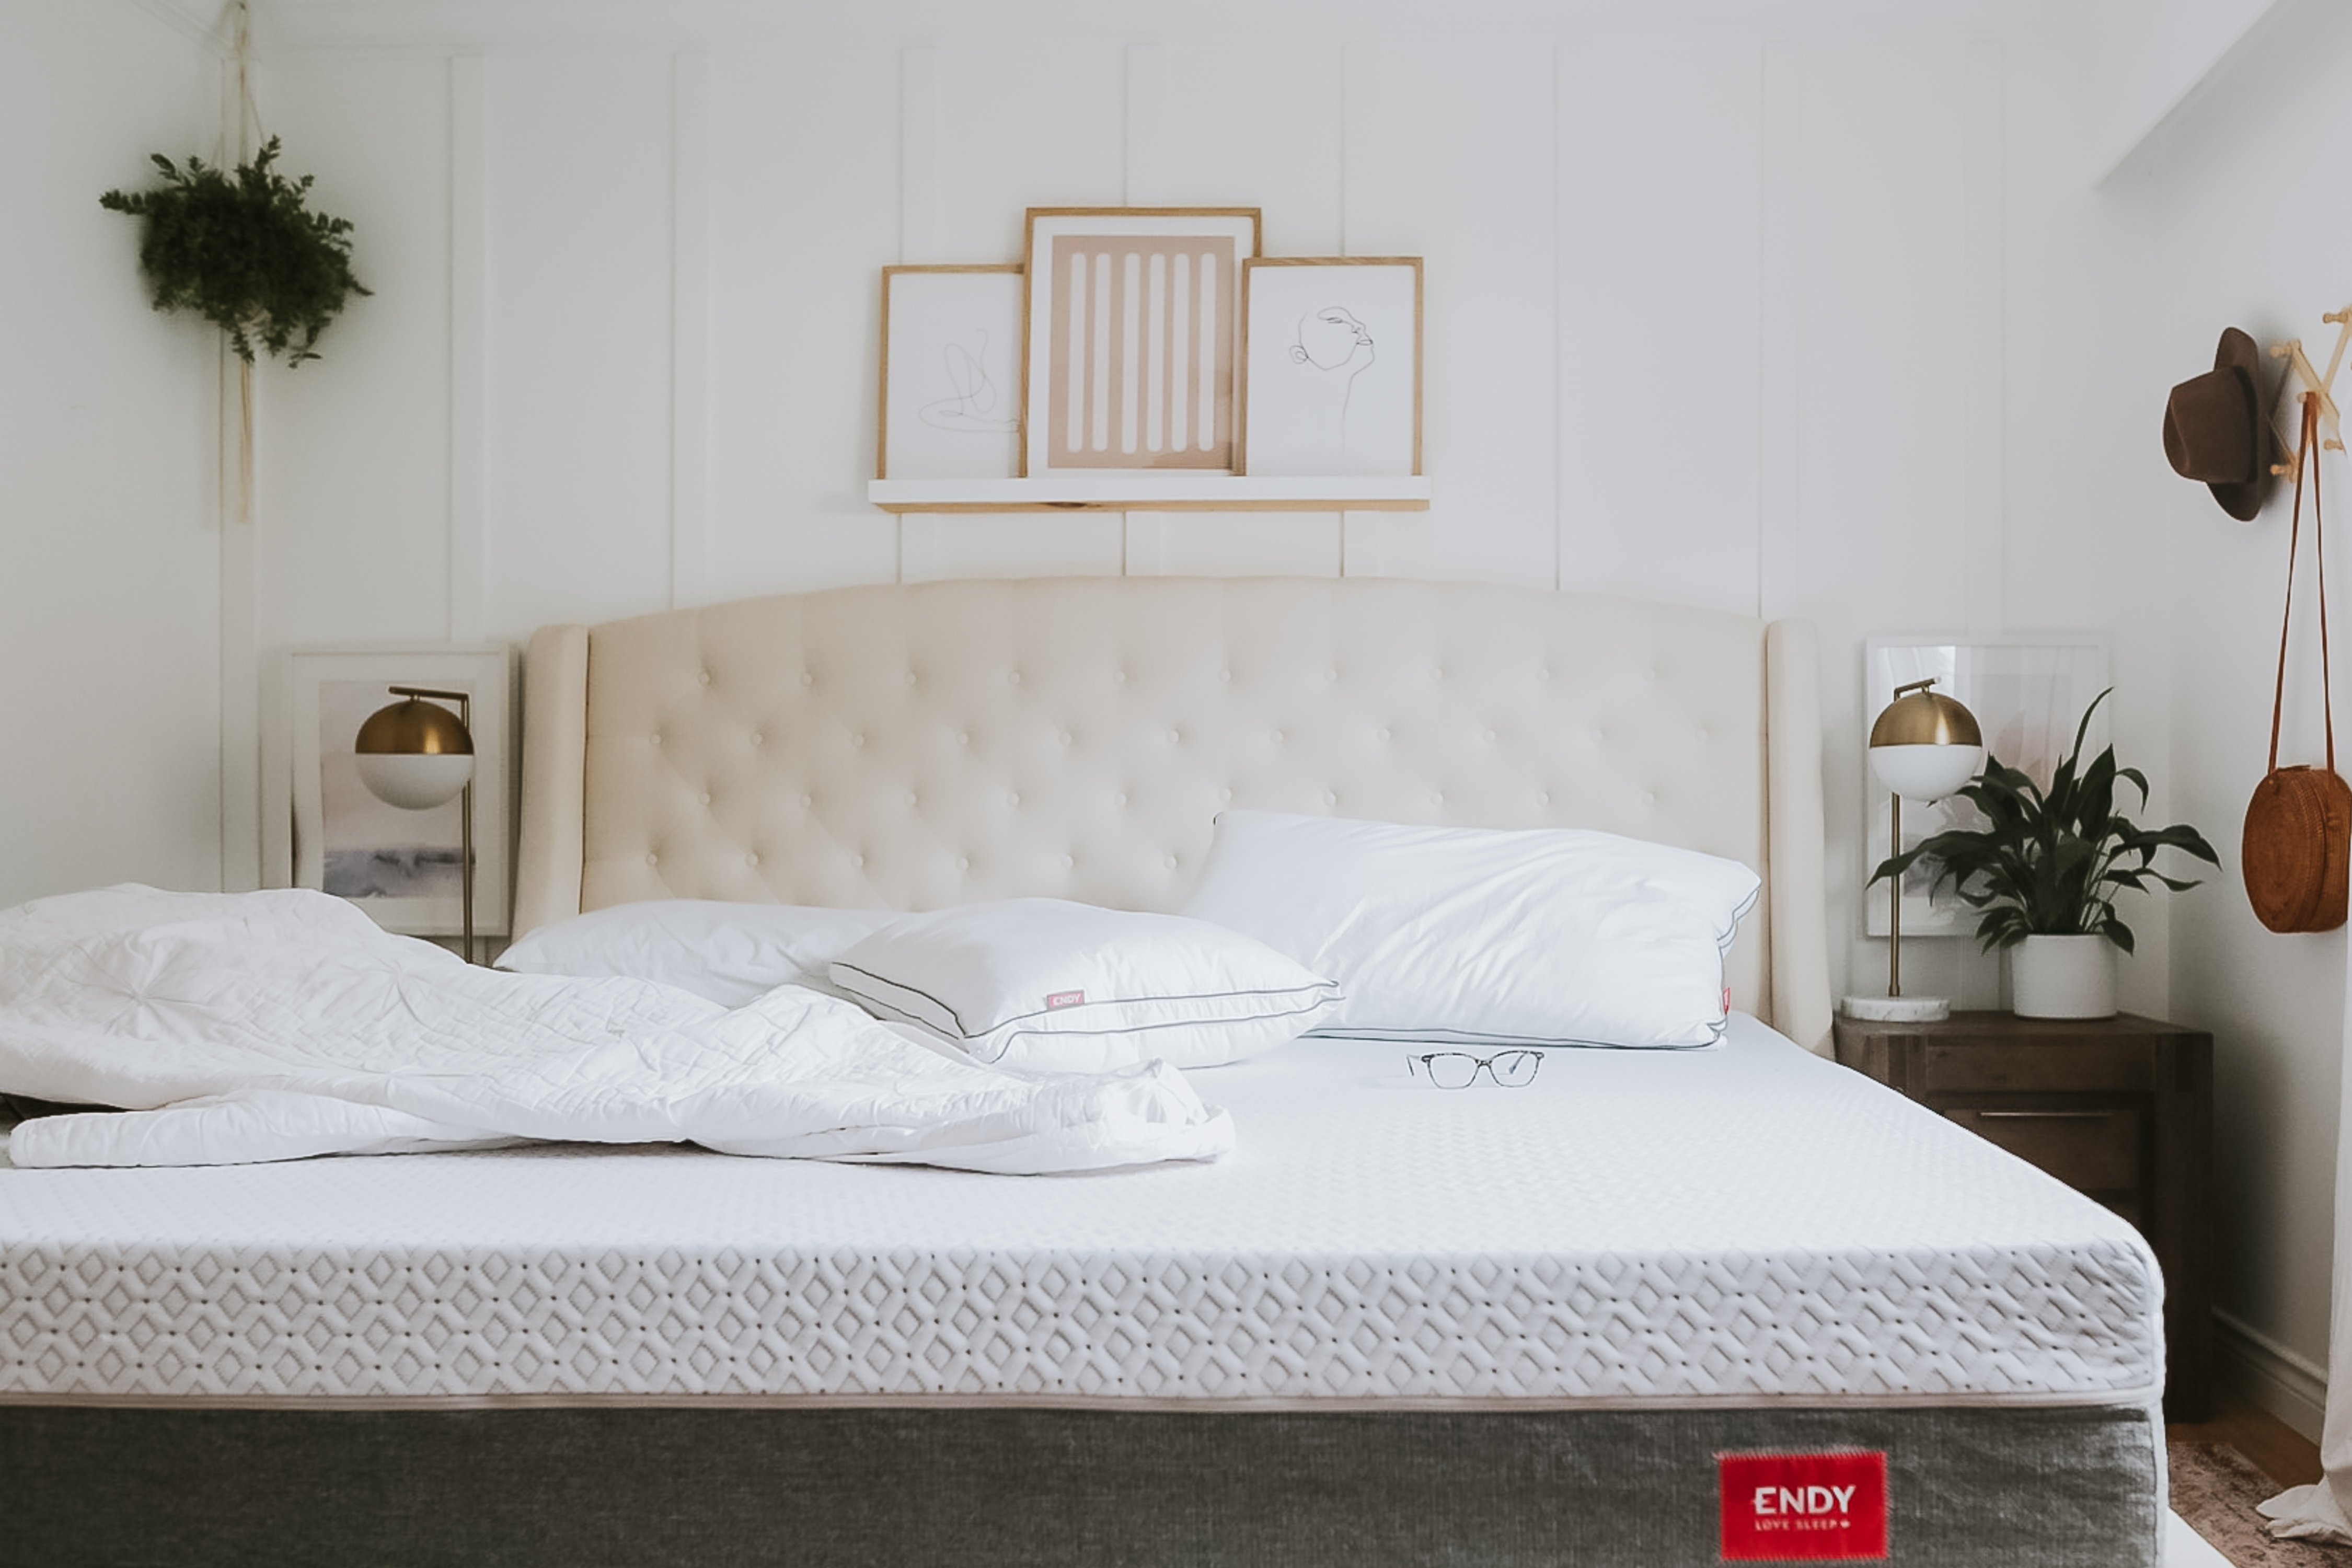 Better Sleeps with Endy. Full review on our Endy Mattress mattress. Why I didn't like it at first and what won me over. Read my Endy Review Below